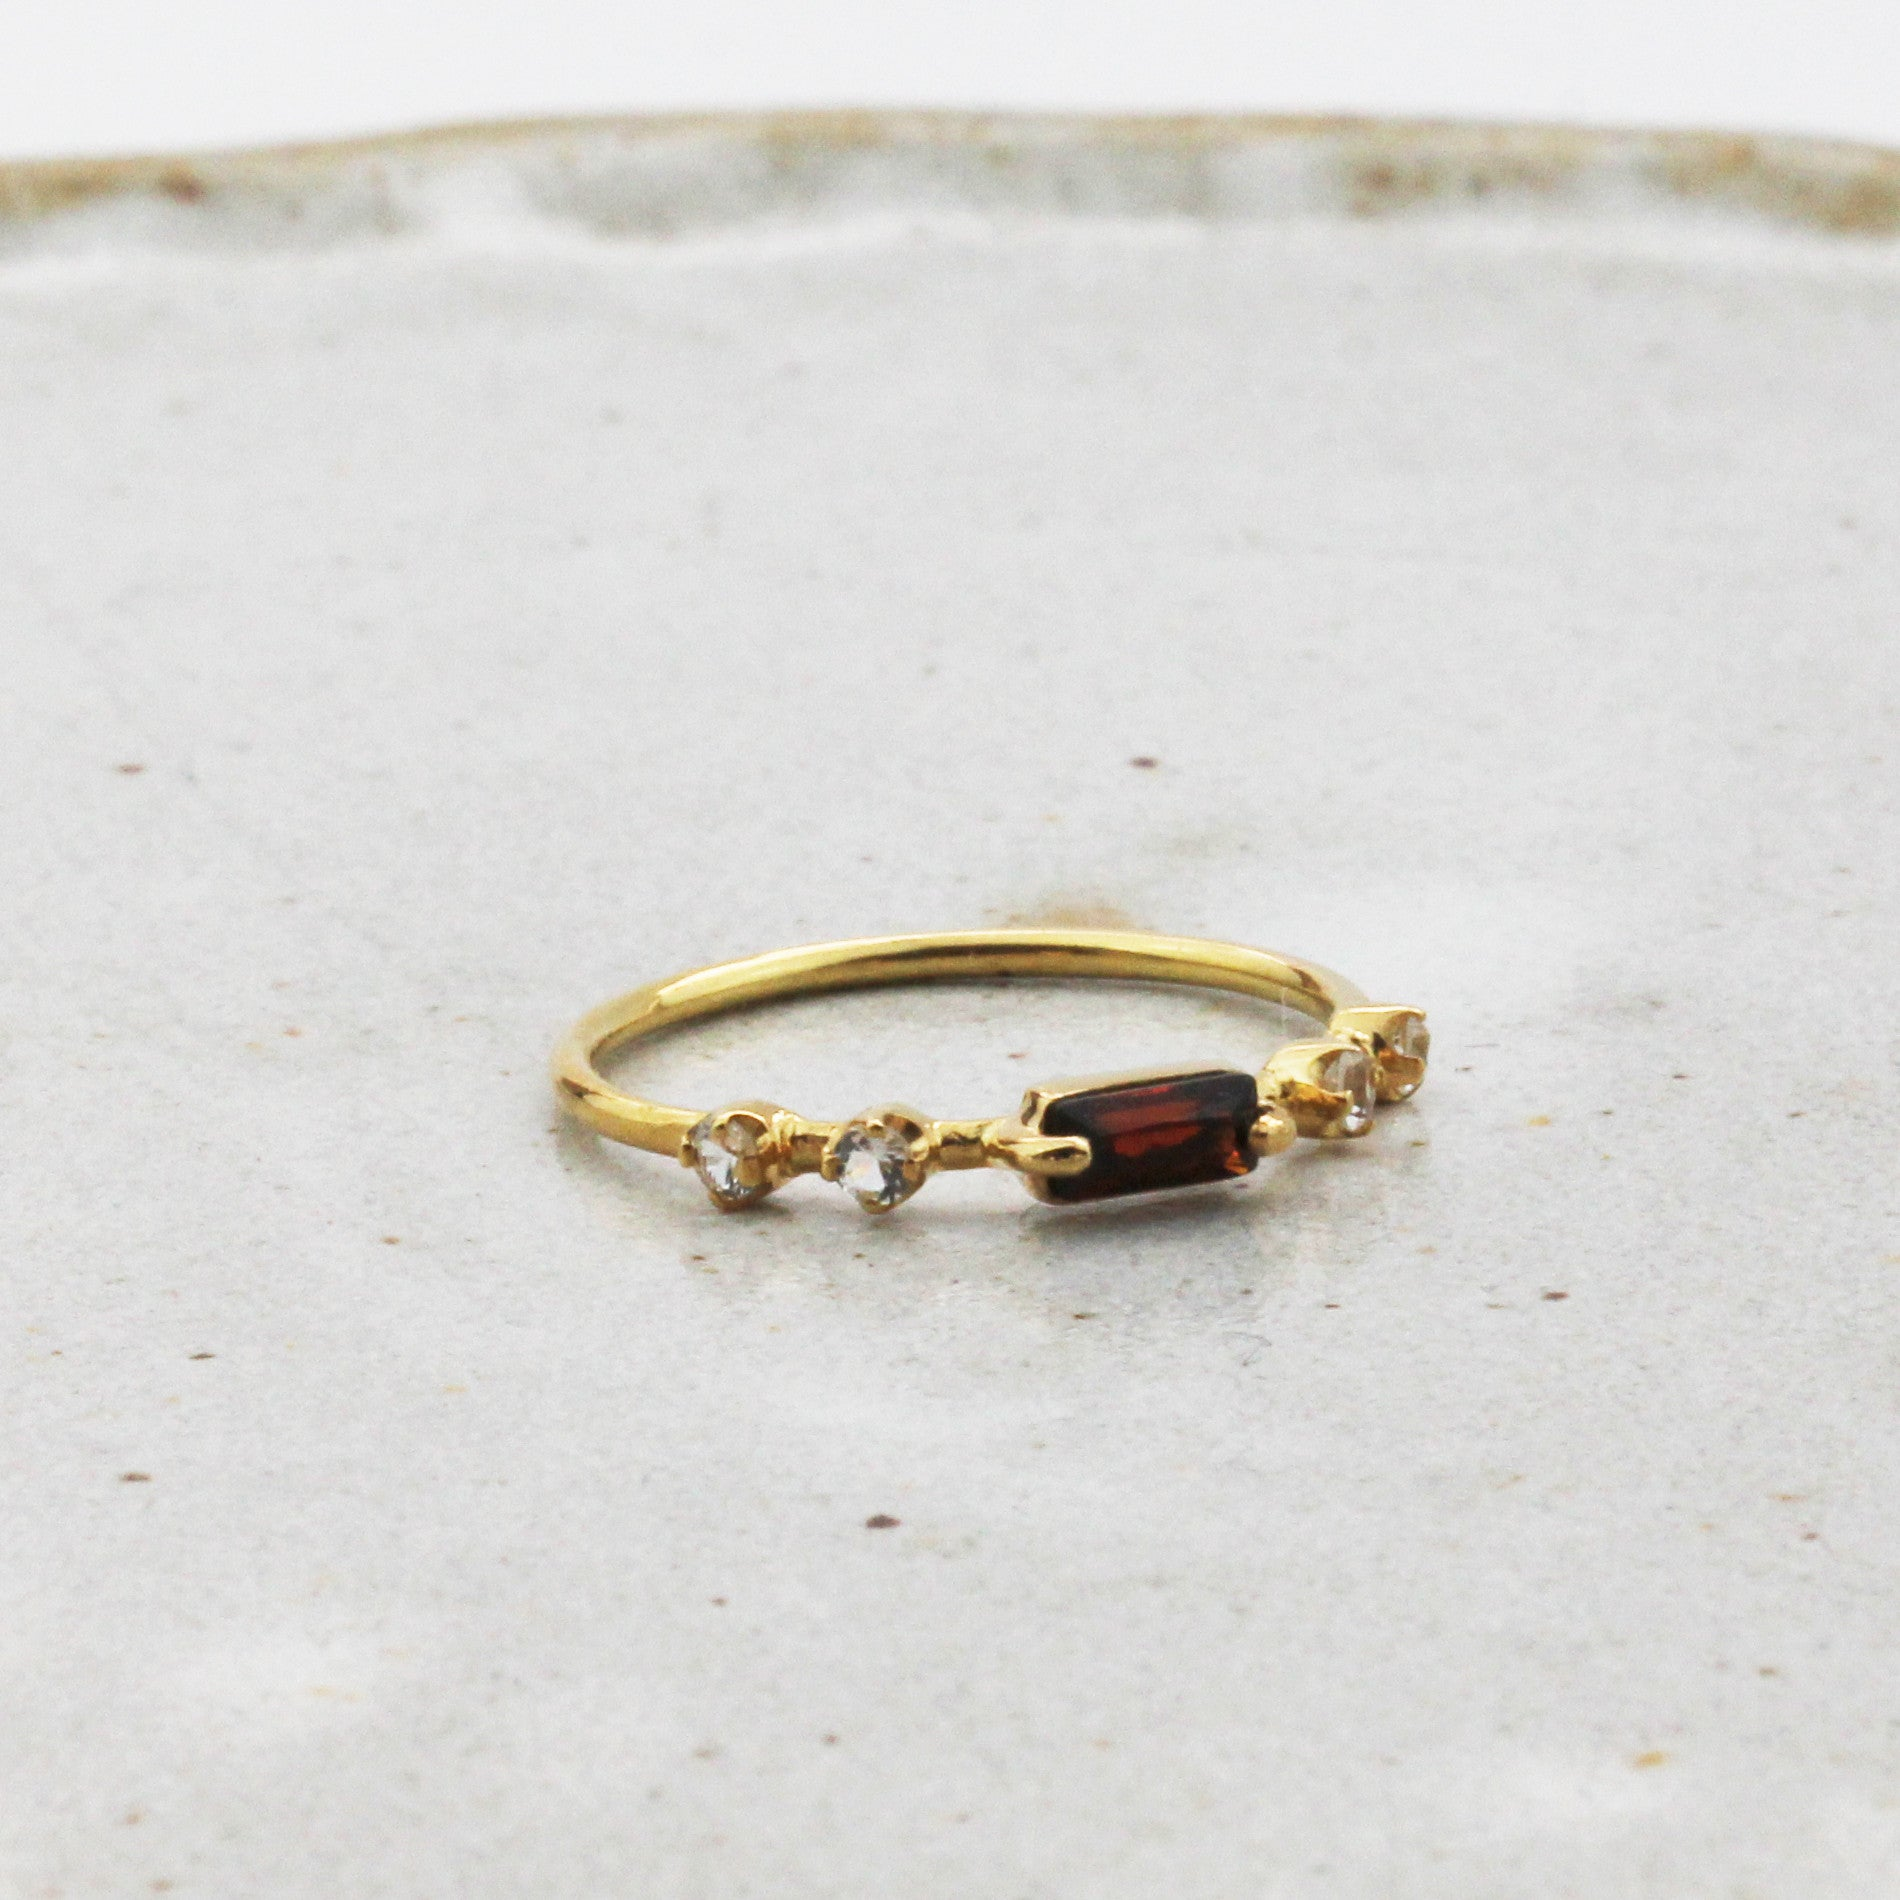 Pillars Gold Ring - Garnet & Zircons